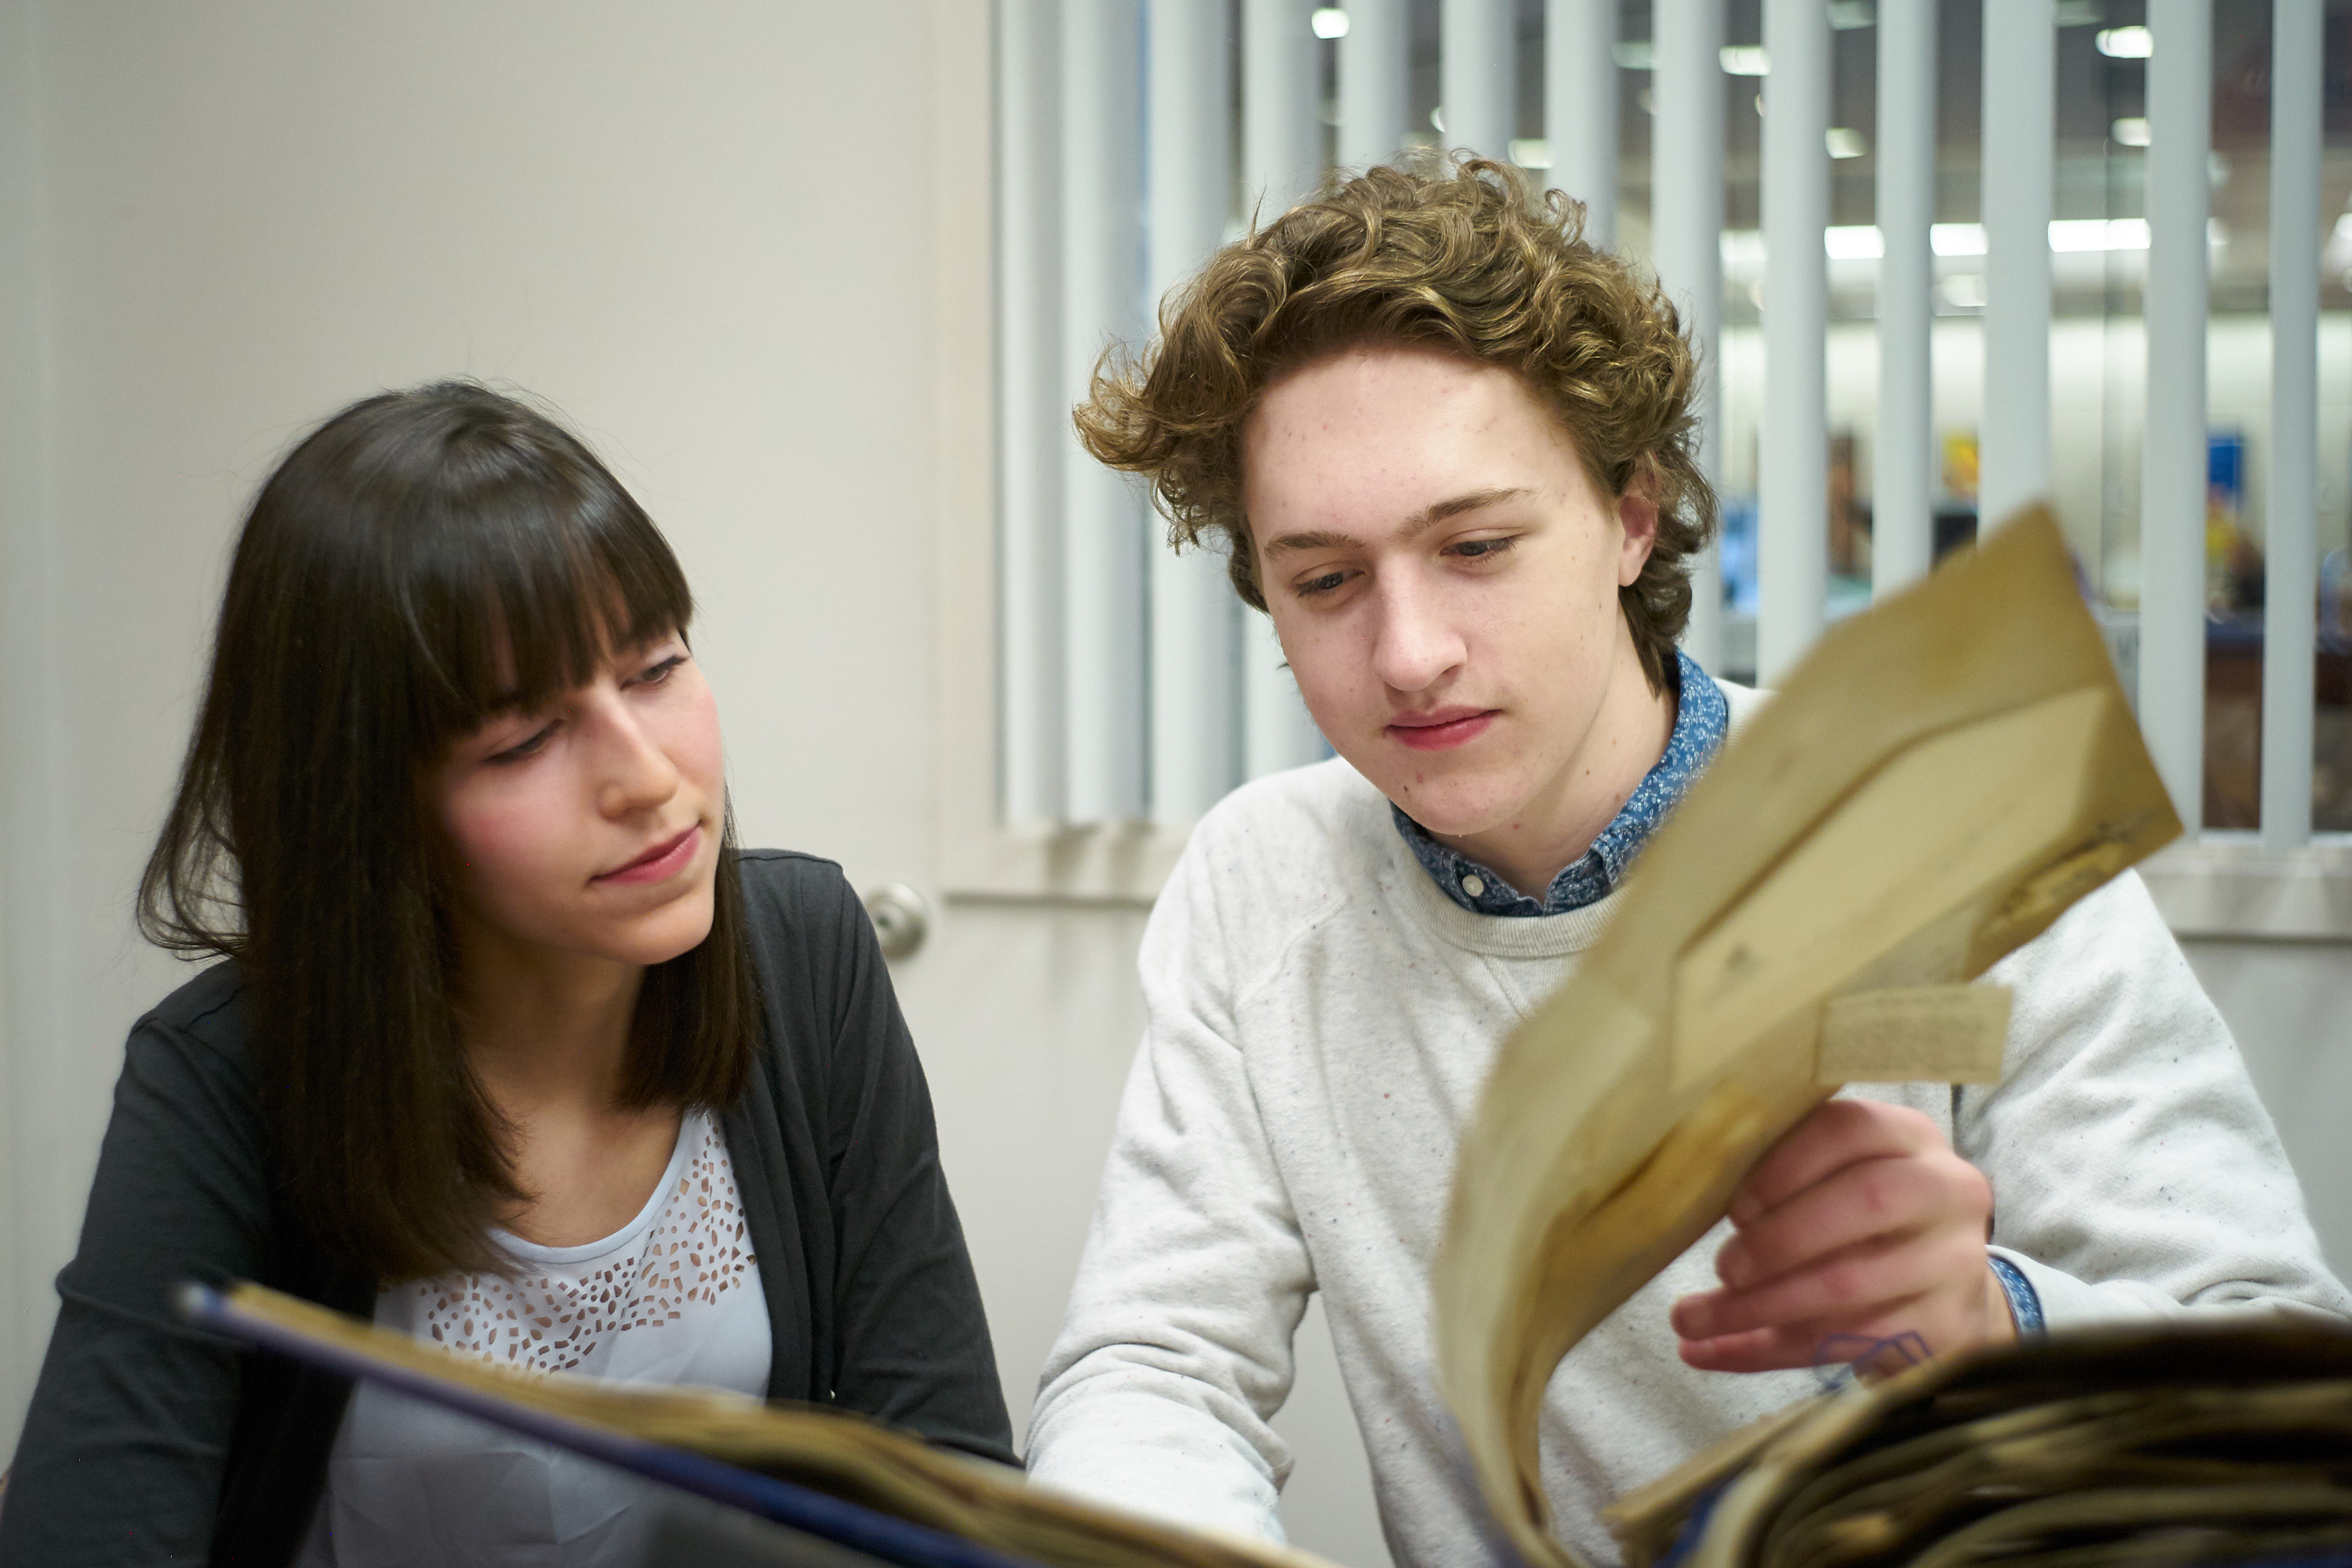 Helen Stec '18 (CLAS) and Charles Smart '18 (CLAS) review a scrapbook from the early 1920s kept by Flora Howe '25 at the University Archives on April 6, 2016. (Peter Morenus/UConn Photo)